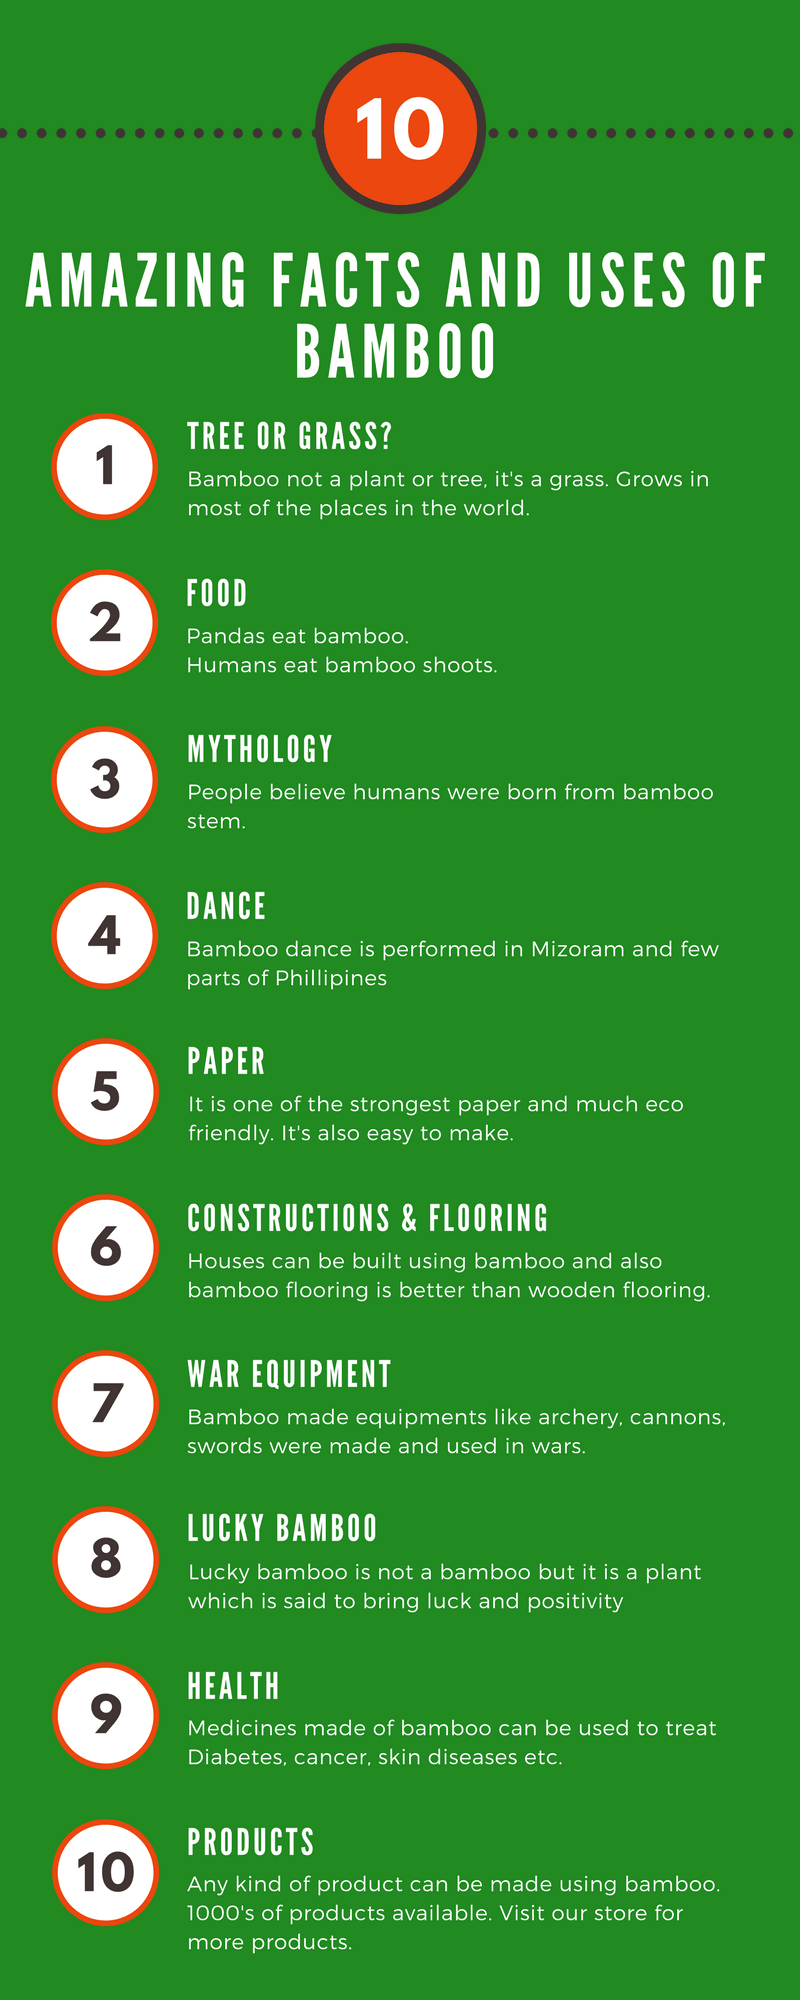 10 lesser known amazing facts of Bamboo - Bamboooz